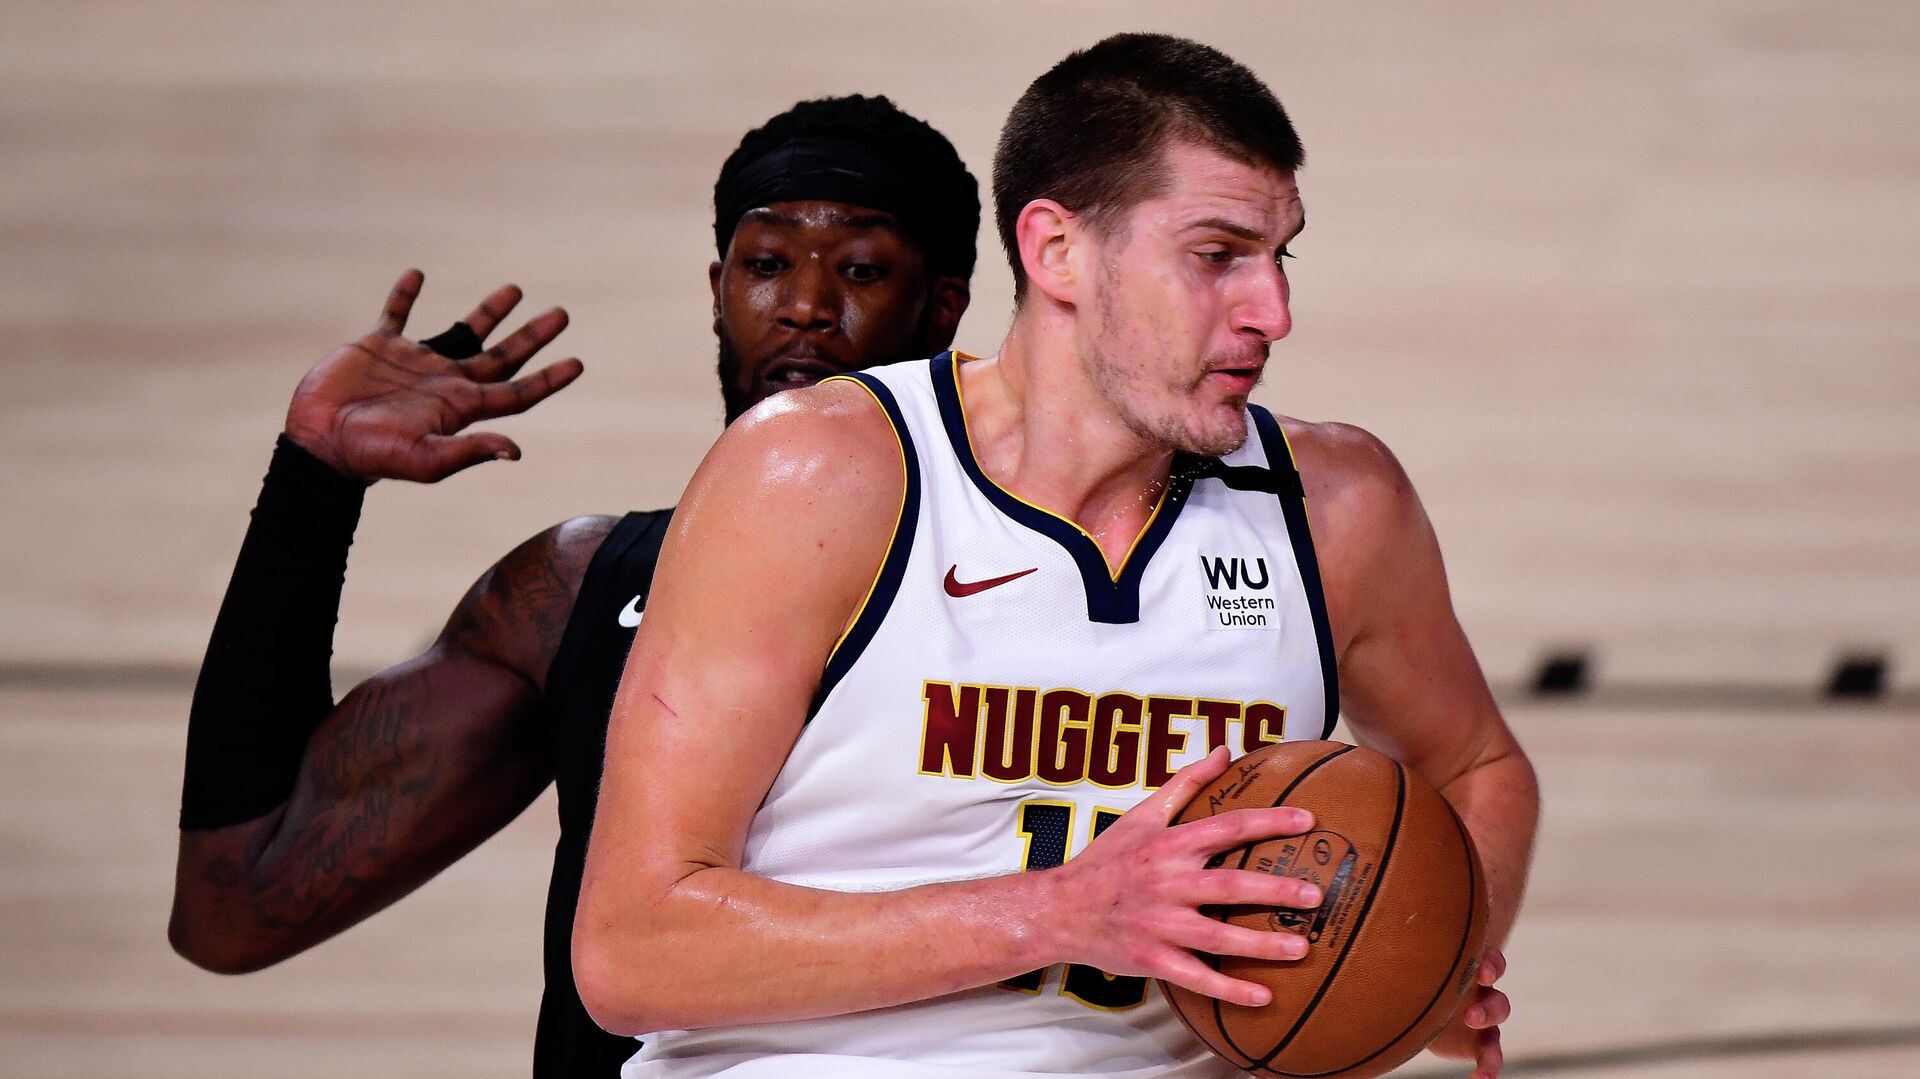 LAKE BUENA VISTA, FLORIDA - SEPTEMBER 15: Nikola Jokic #15 of the Denver Nuggets drives the ball against Montrezl Harrell #5 of the LA Clippers during the first quarter in Game Seven of the Western Conference Second Round during the 2020 NBA Playoffs at AdventHealth Arena at the ESPN Wide World Of Sports Complex on September 15, 2020 in Lake Buena Vista, Florida. NOTE TO USER: User expressly acknowledges and agrees that, by downloading and or using this photograph, User is consenting to the terms and conditions of the Getty Images License Agreement.   Douglas P. DeFelice/Getty Images/AFP - РИА Новости, 1920, 16.09.2020